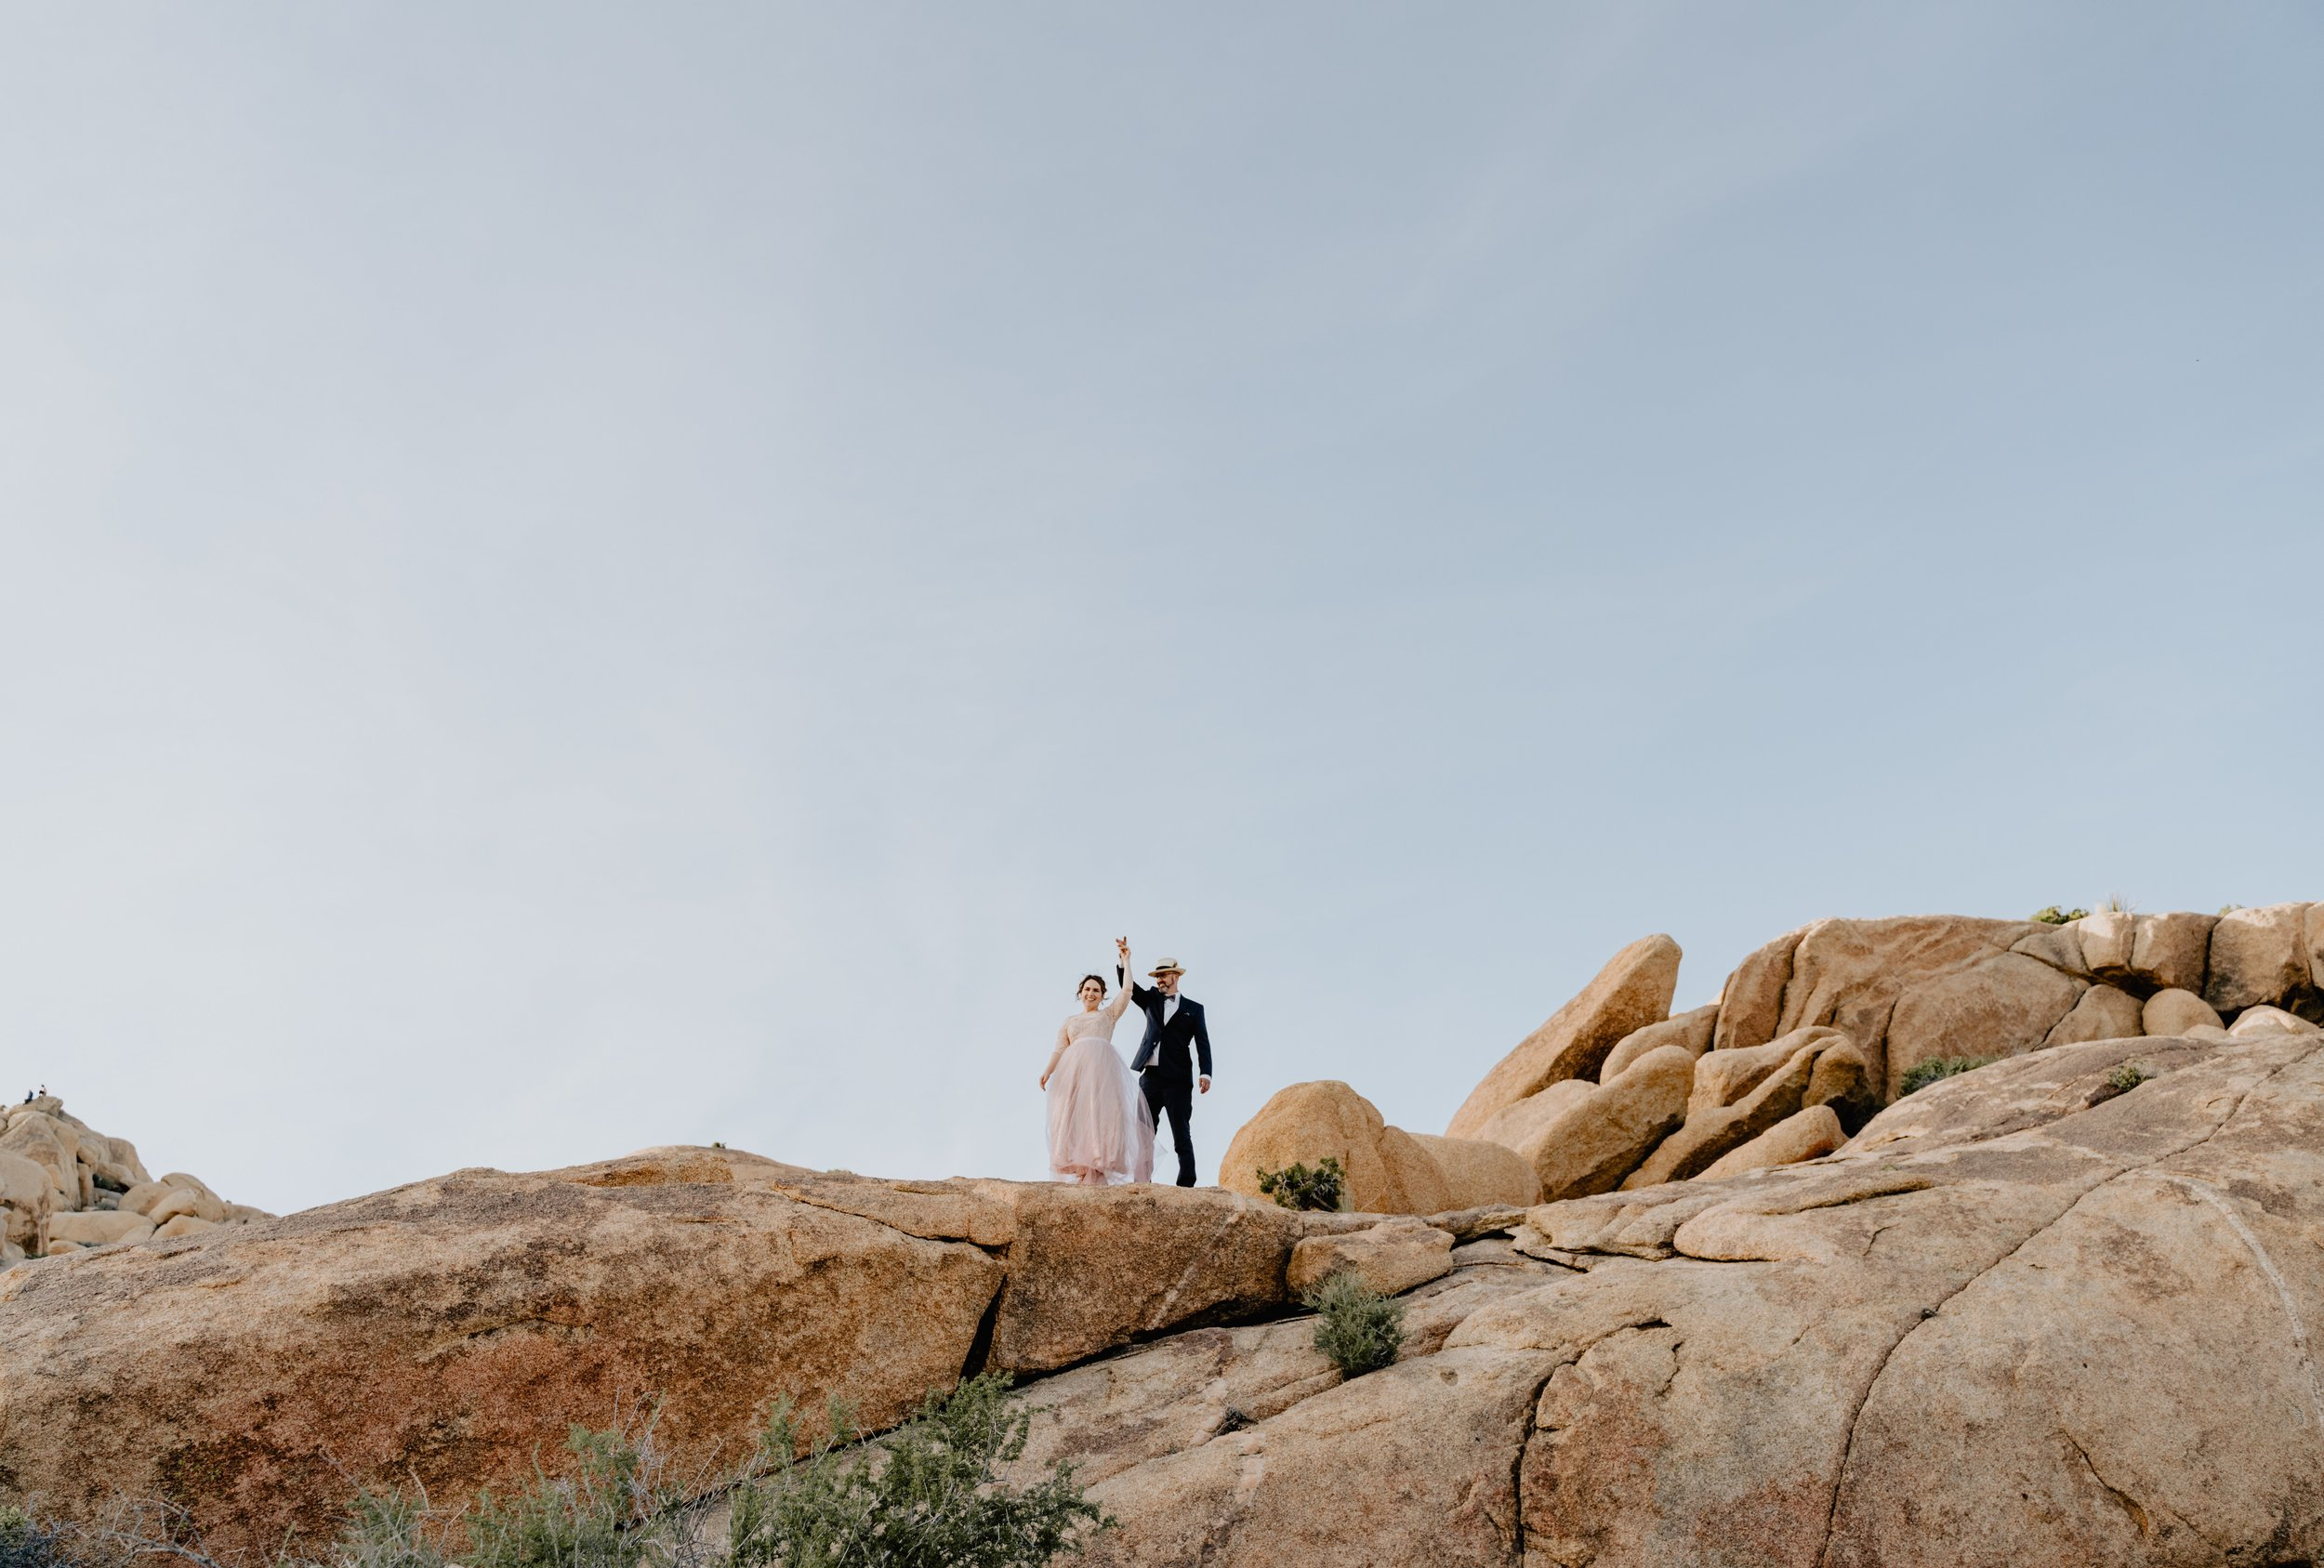 destination wedding and elopement photographer and videographer - based in Southern California, Los Angeles (socal based) for the wild and the madly in love - candid photos, modern films